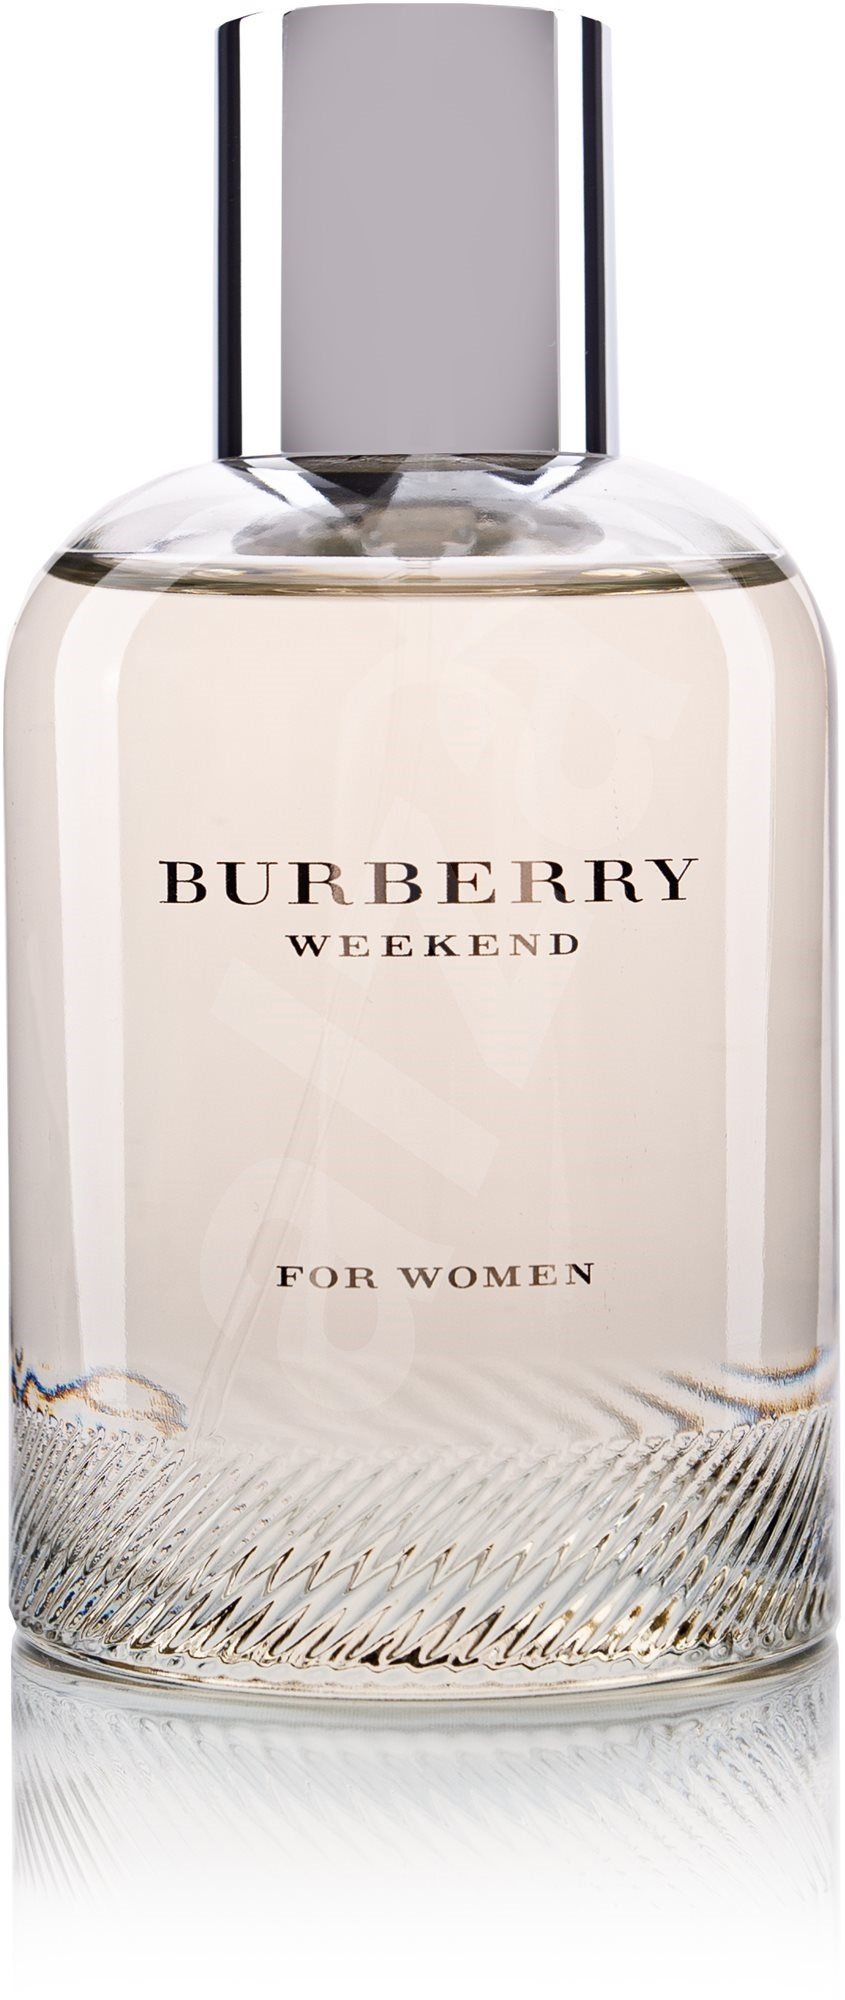 burberry weekend for women 100 ml eau de parfum. Black Bedroom Furniture Sets. Home Design Ideas